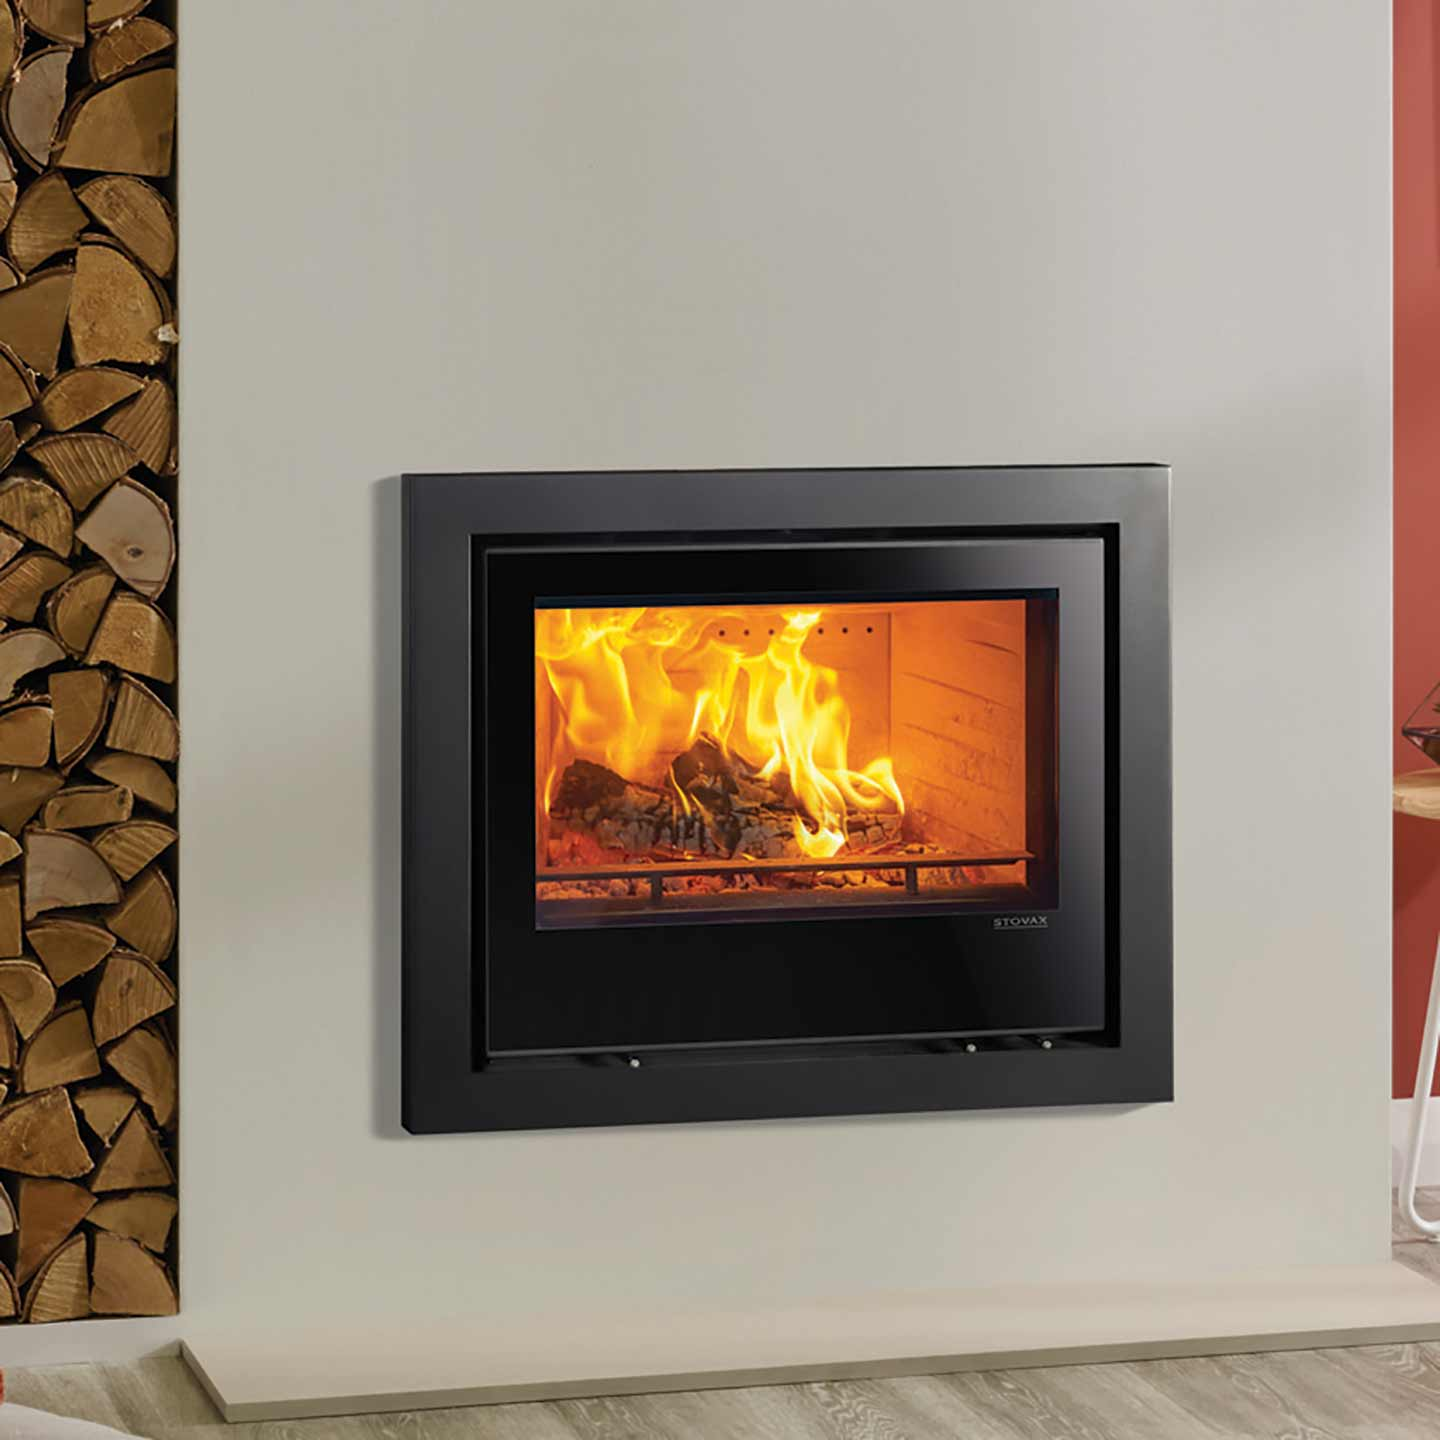 Stovax Elise 680 Glass Wood Burning Cassette Stove The